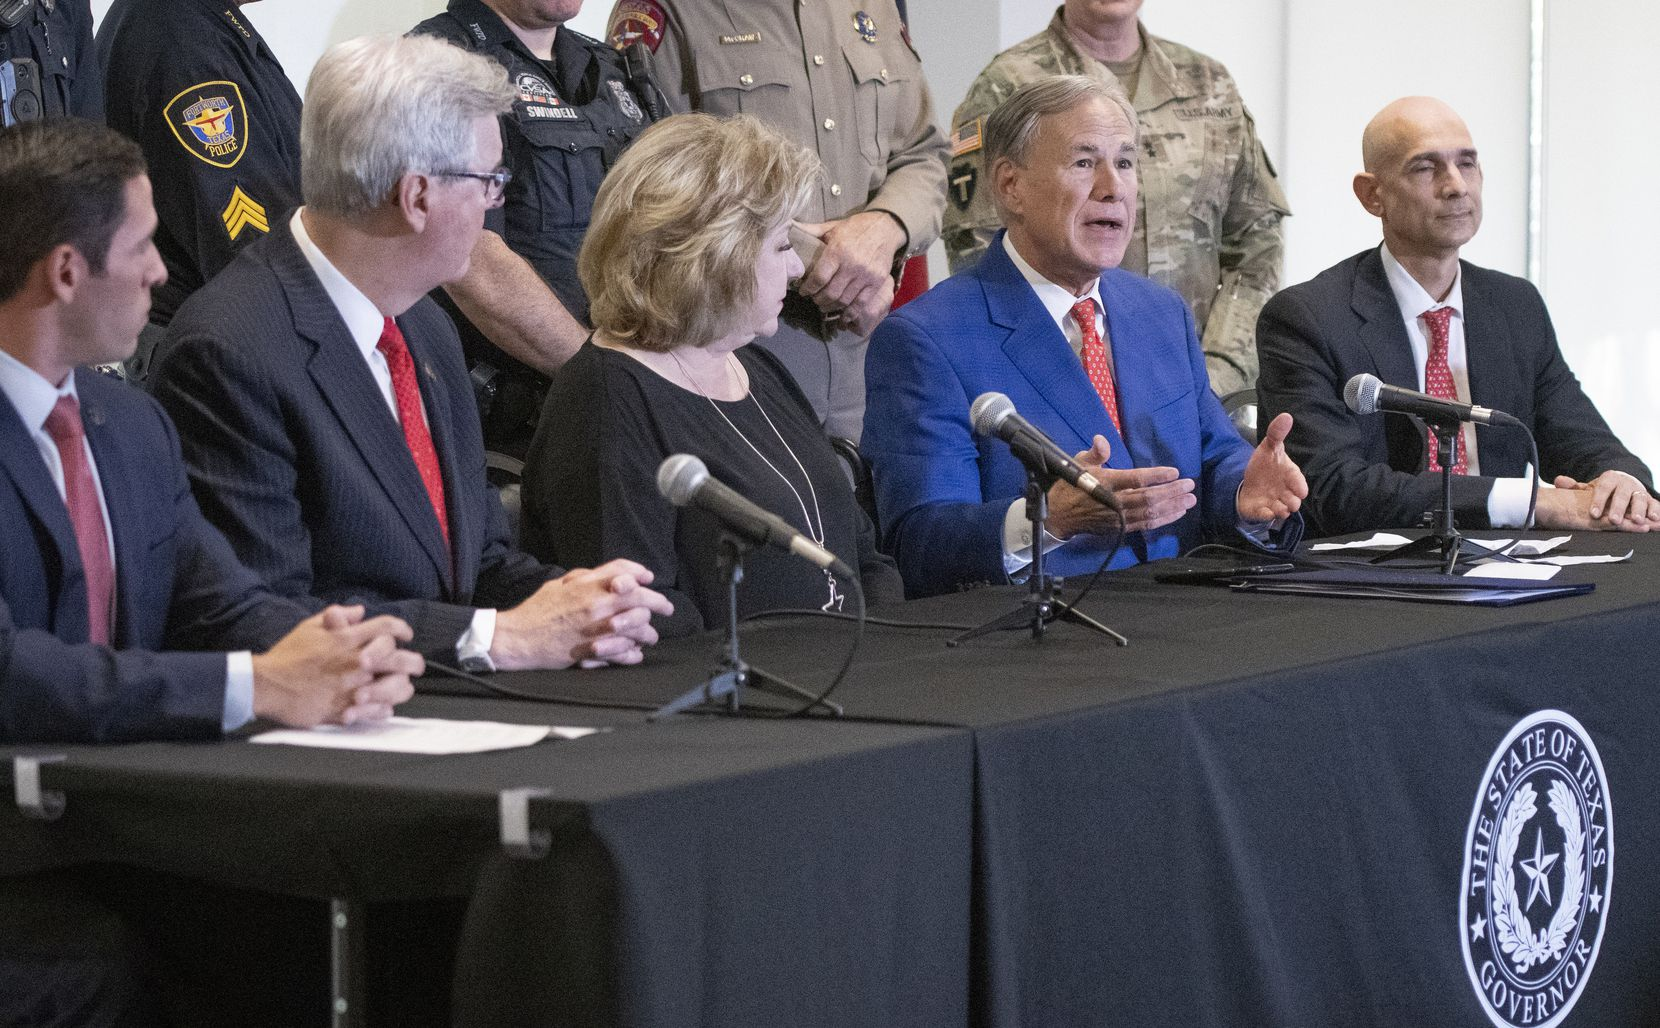 Texas Governor Greg Abbott, answers a question at a press conference where he signed HB9 into law at the Fort Worth Police Officers Association headquarters on Friday September 17, 2021. Joining Abbott at the press conference were, from left, FWPOA President Manny Ramirez, Lieutenant Governor Dan Patrick, Senator Jane Nelson and Representative Greg Bonnen, (Robert W. Hart/Special Contributor)